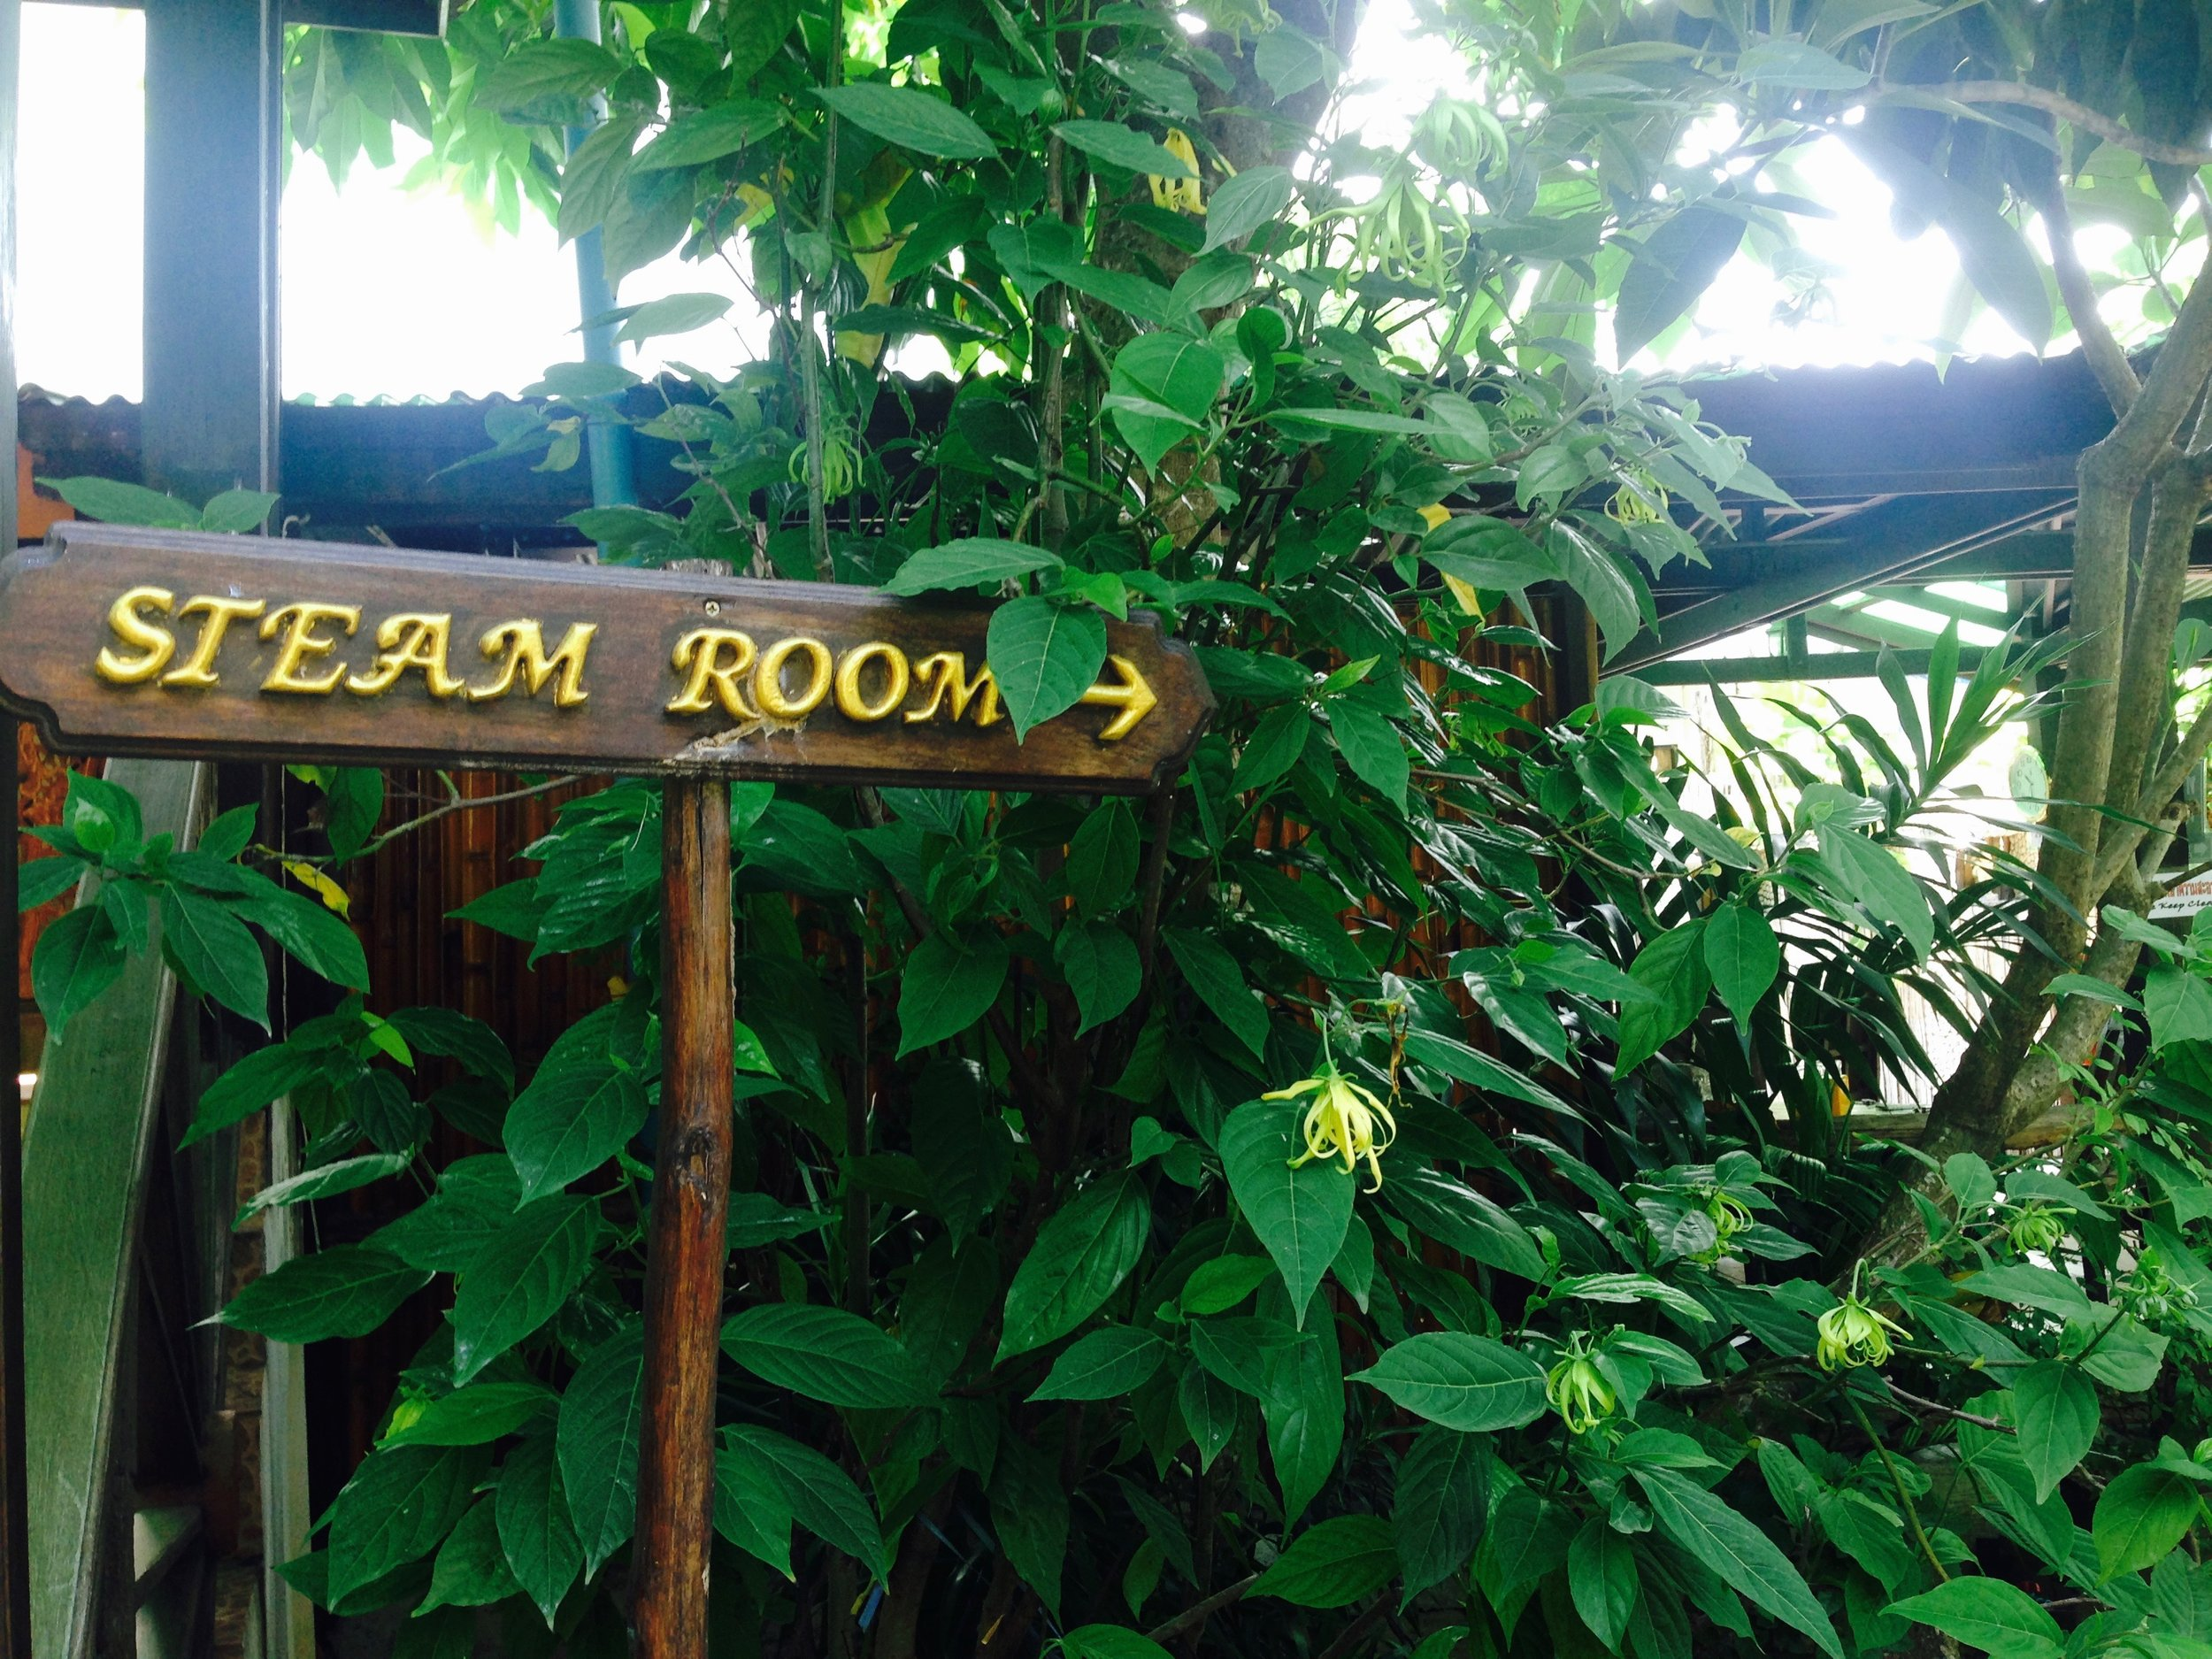 Complimentary steam bath pass, good to take post-colema to sweat all the remaining toxins out